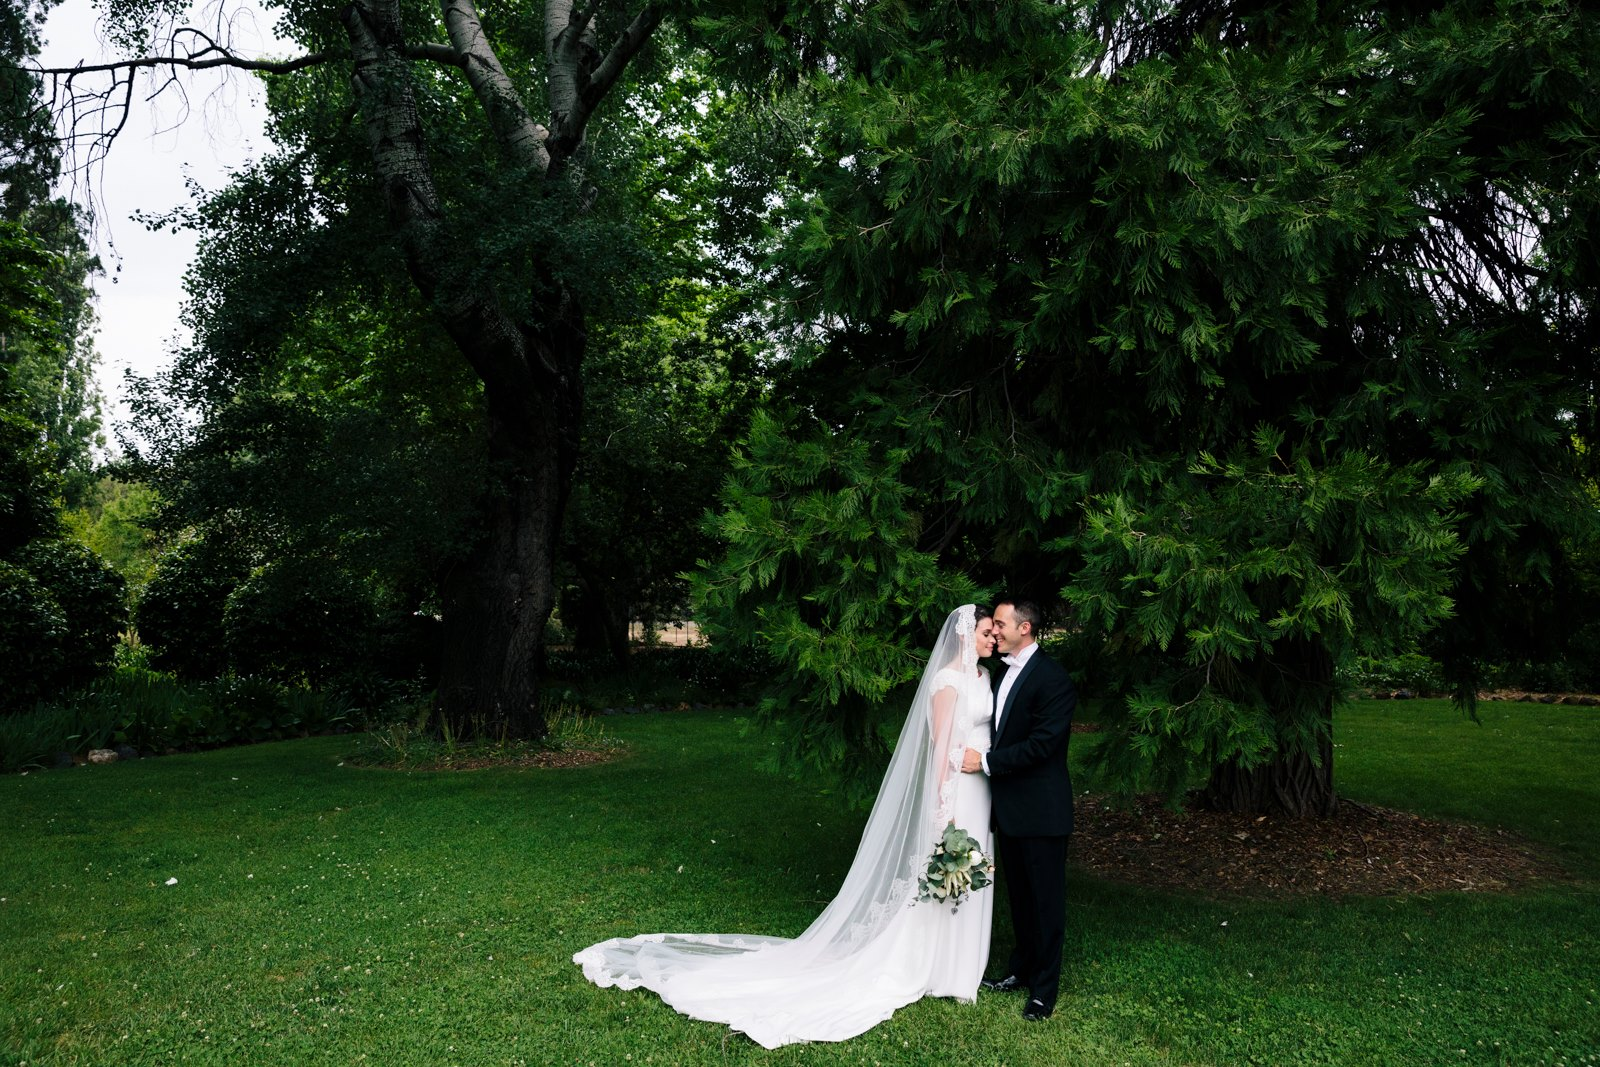 Tips to finding your perfect wedding photographer